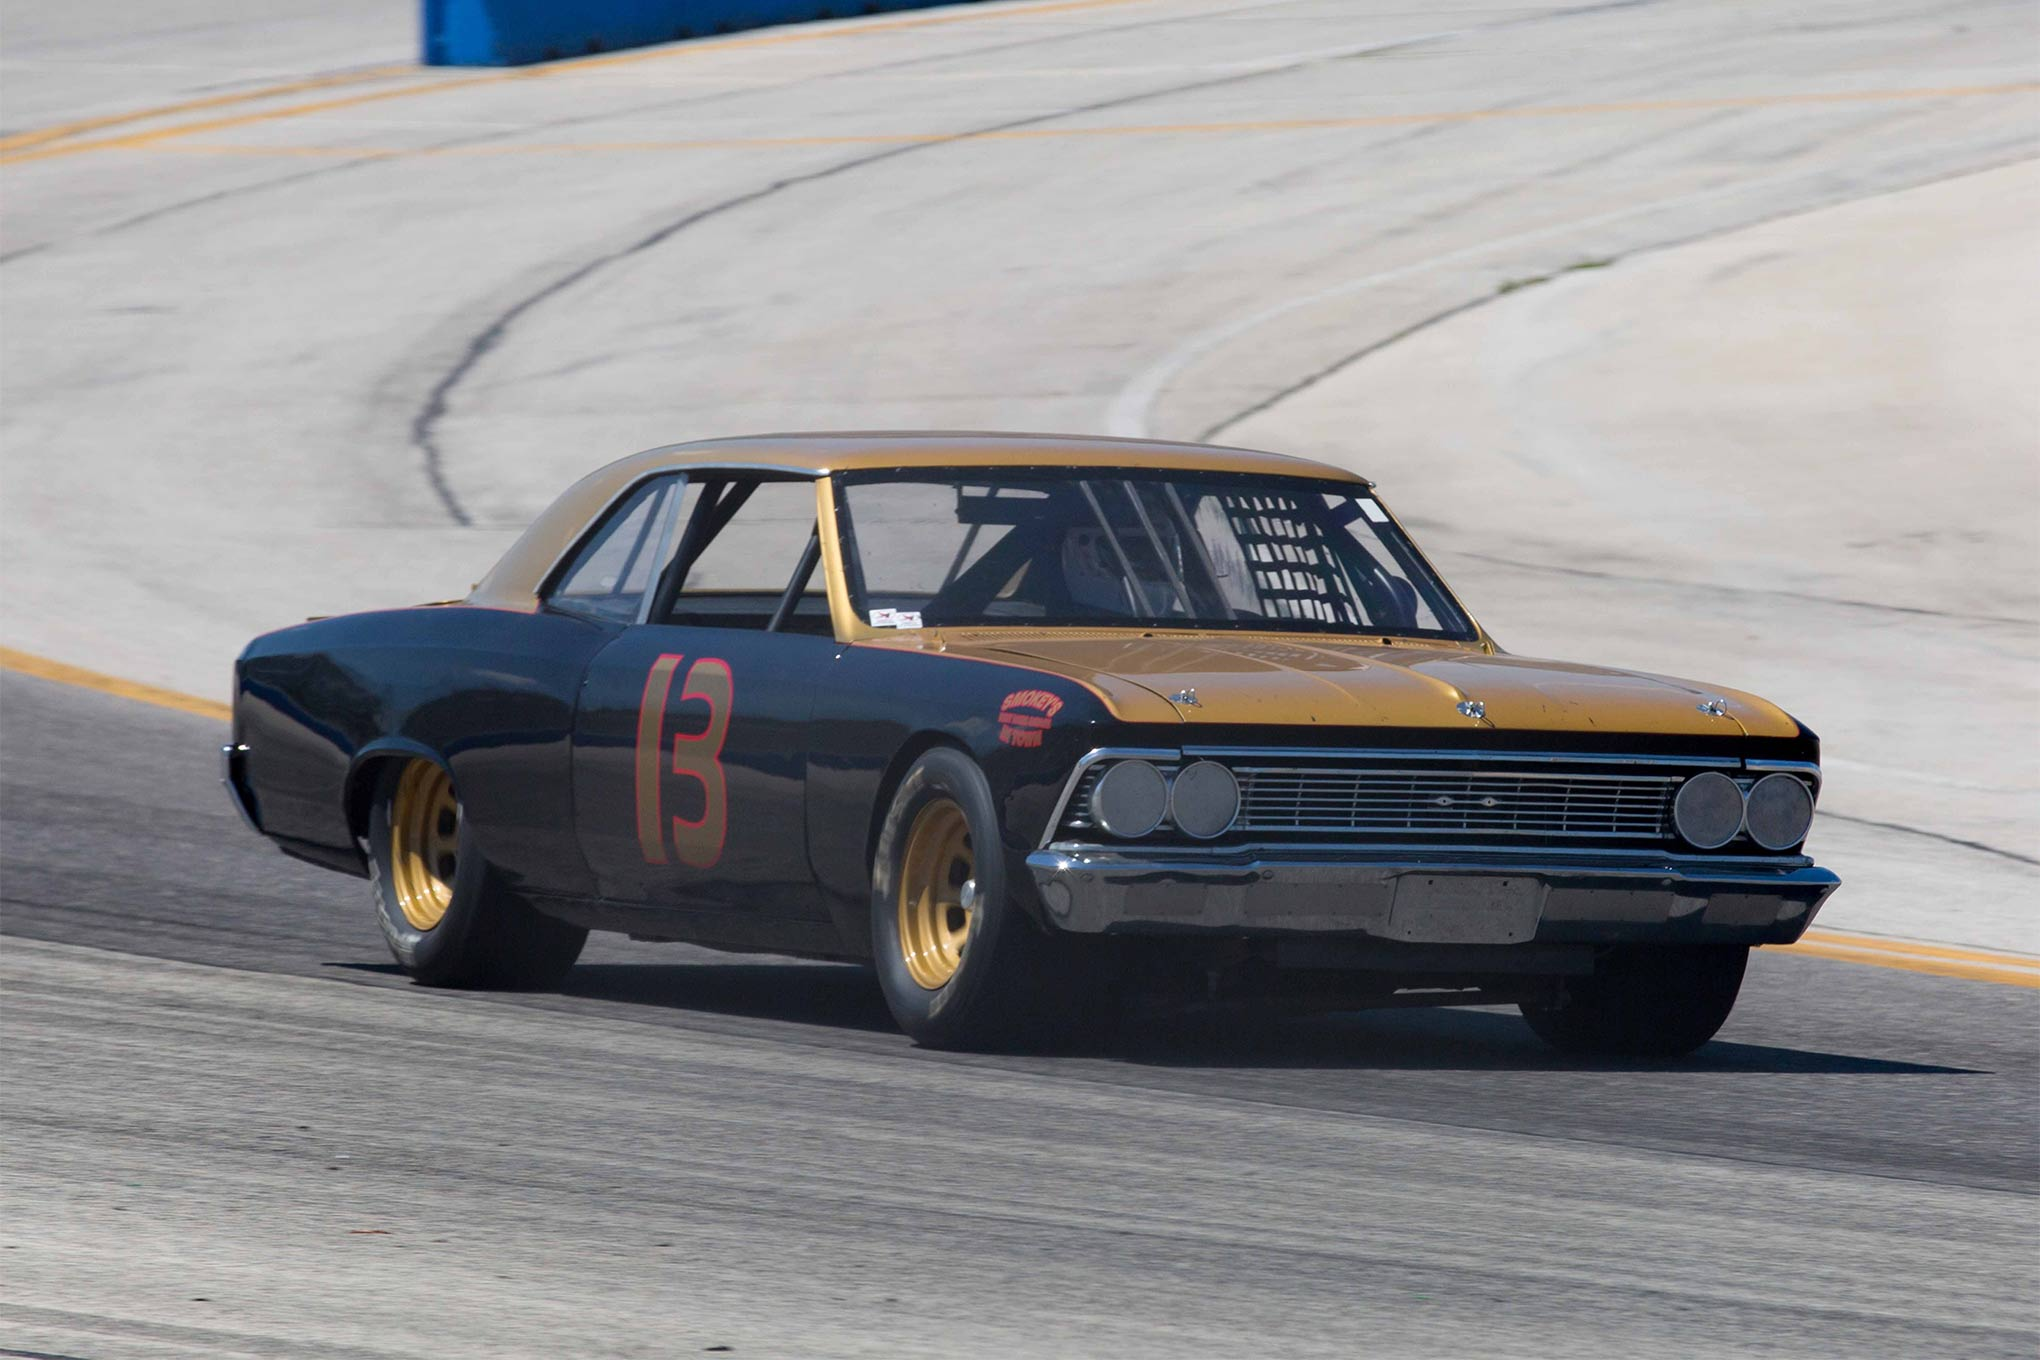 Kenny Hutchens has had a few tribute cars. Most recently, he has raced the Harry Gant #33 and the Darrell Waltrip #88. Here is his Smokey Yunick tribute car in action at the Milwaukee Mile